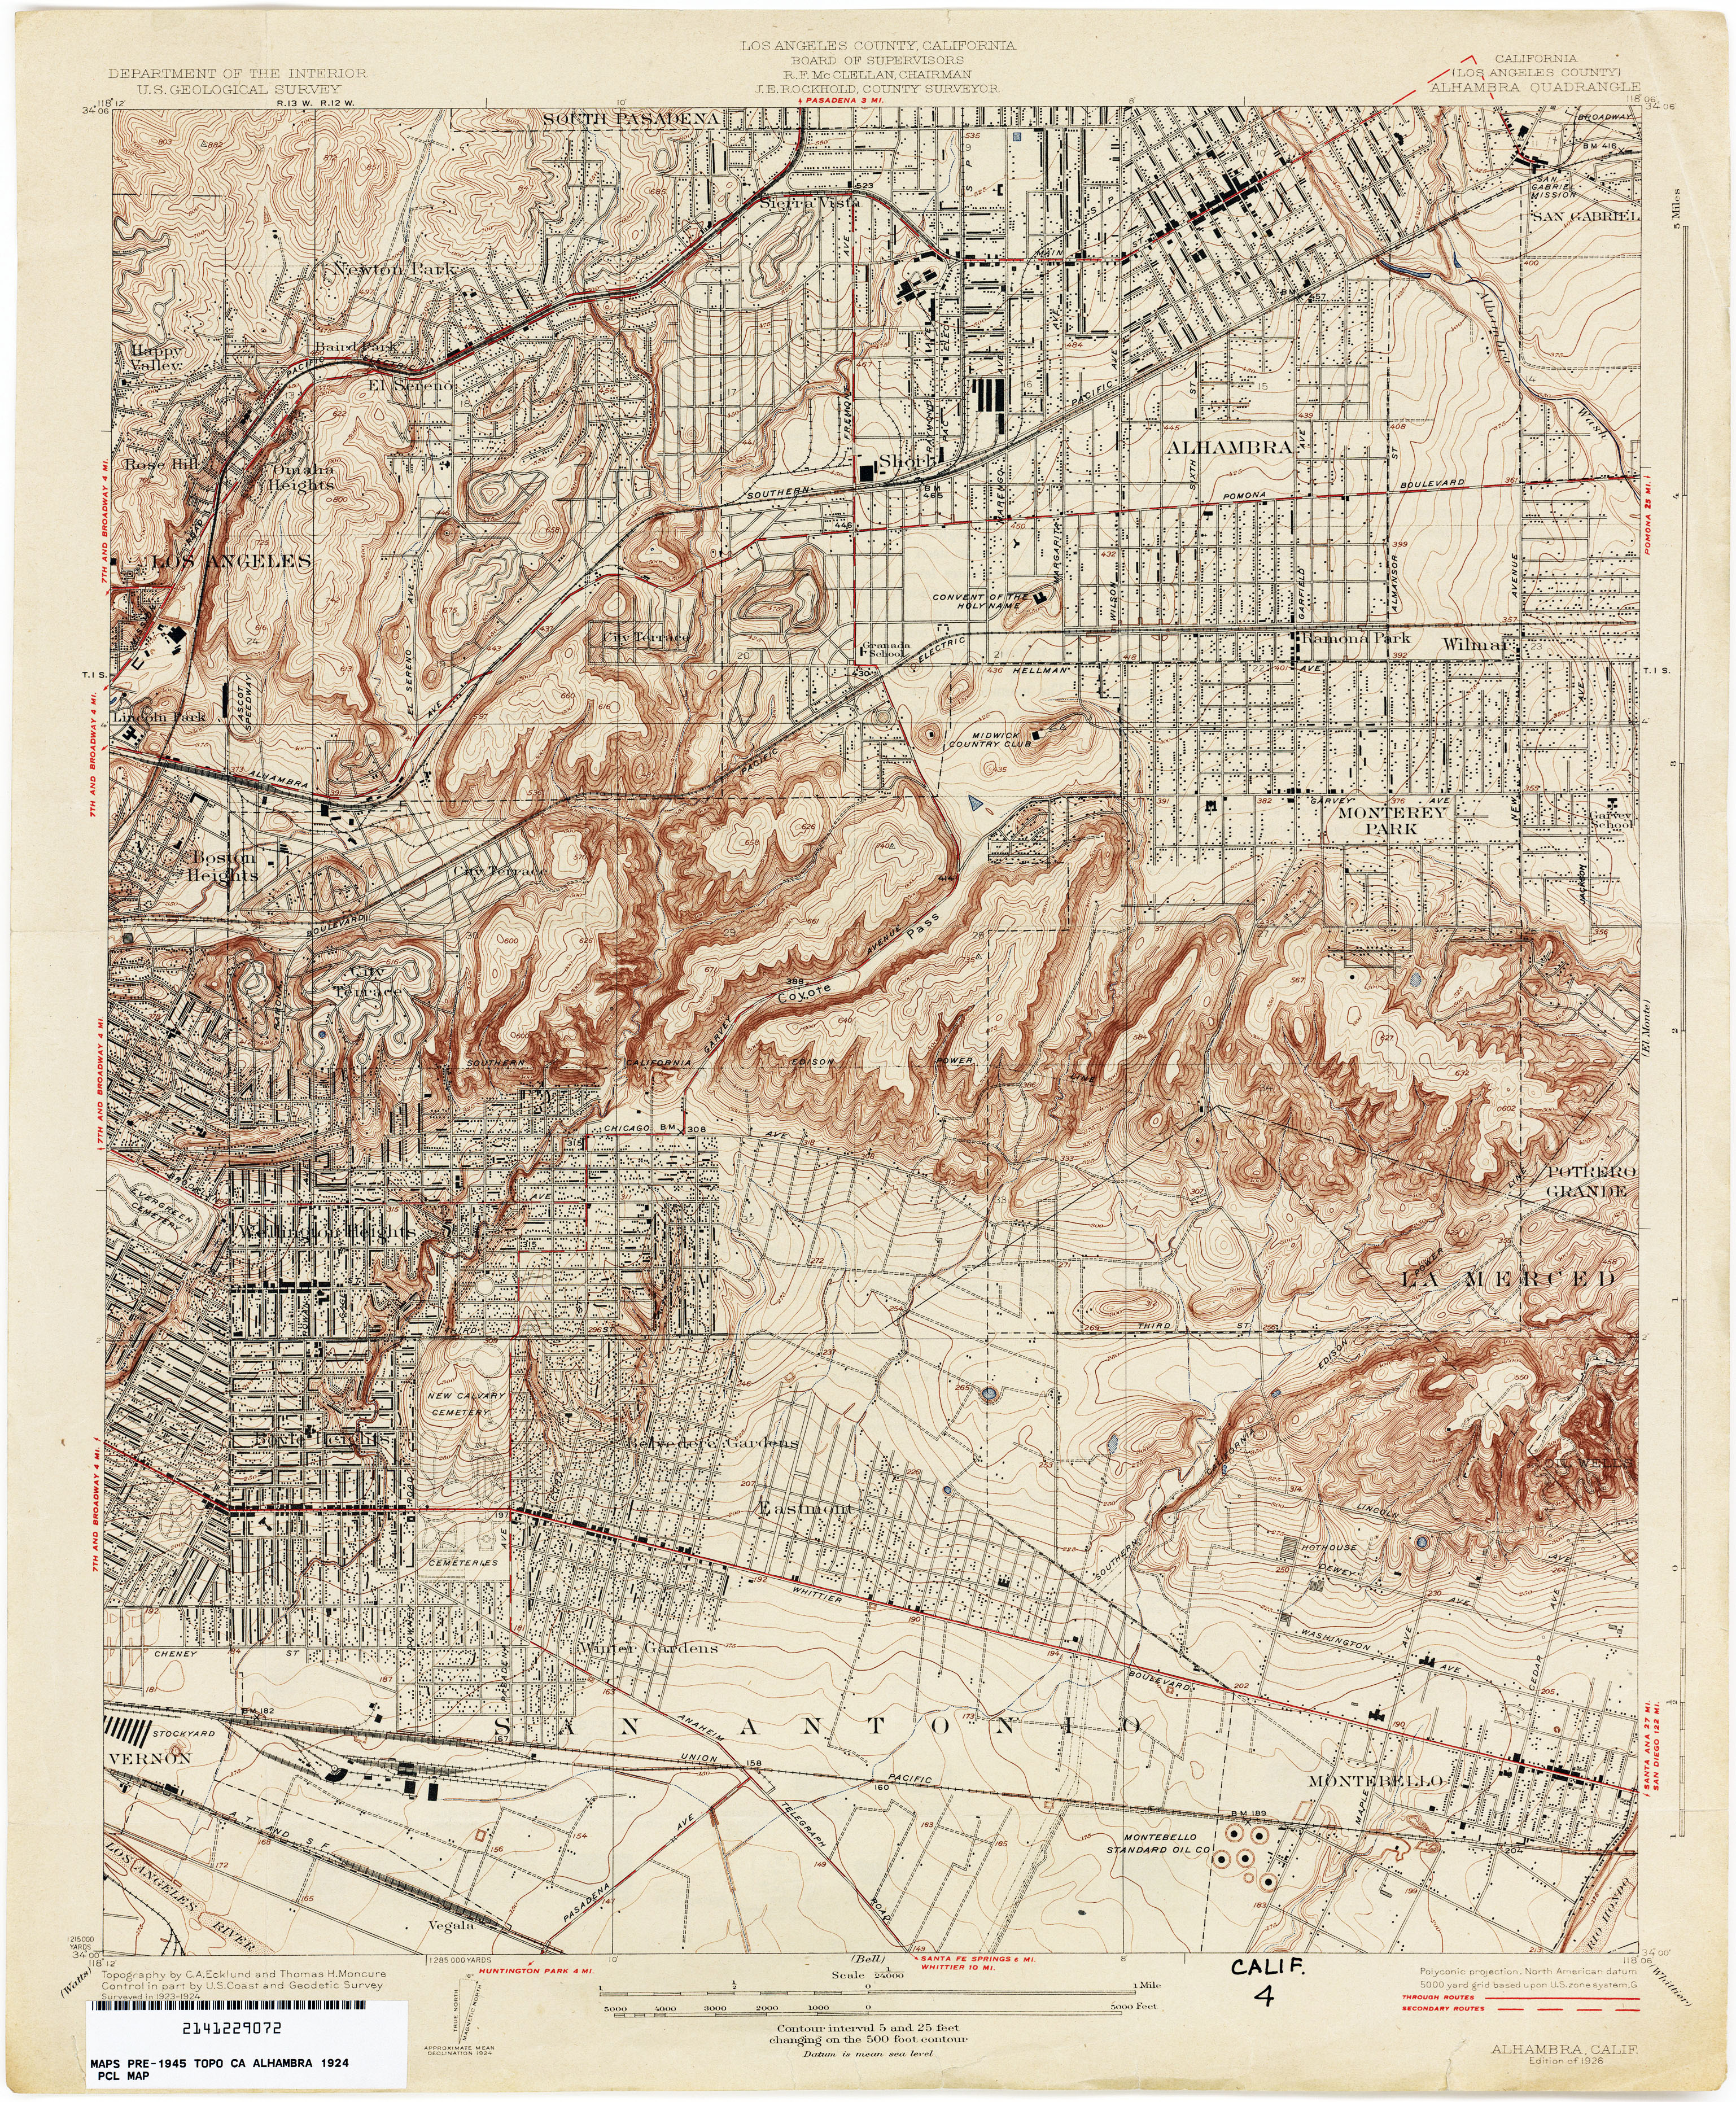 California Map Topography.California Topographic Maps Perry Castaneda Map Collection Ut